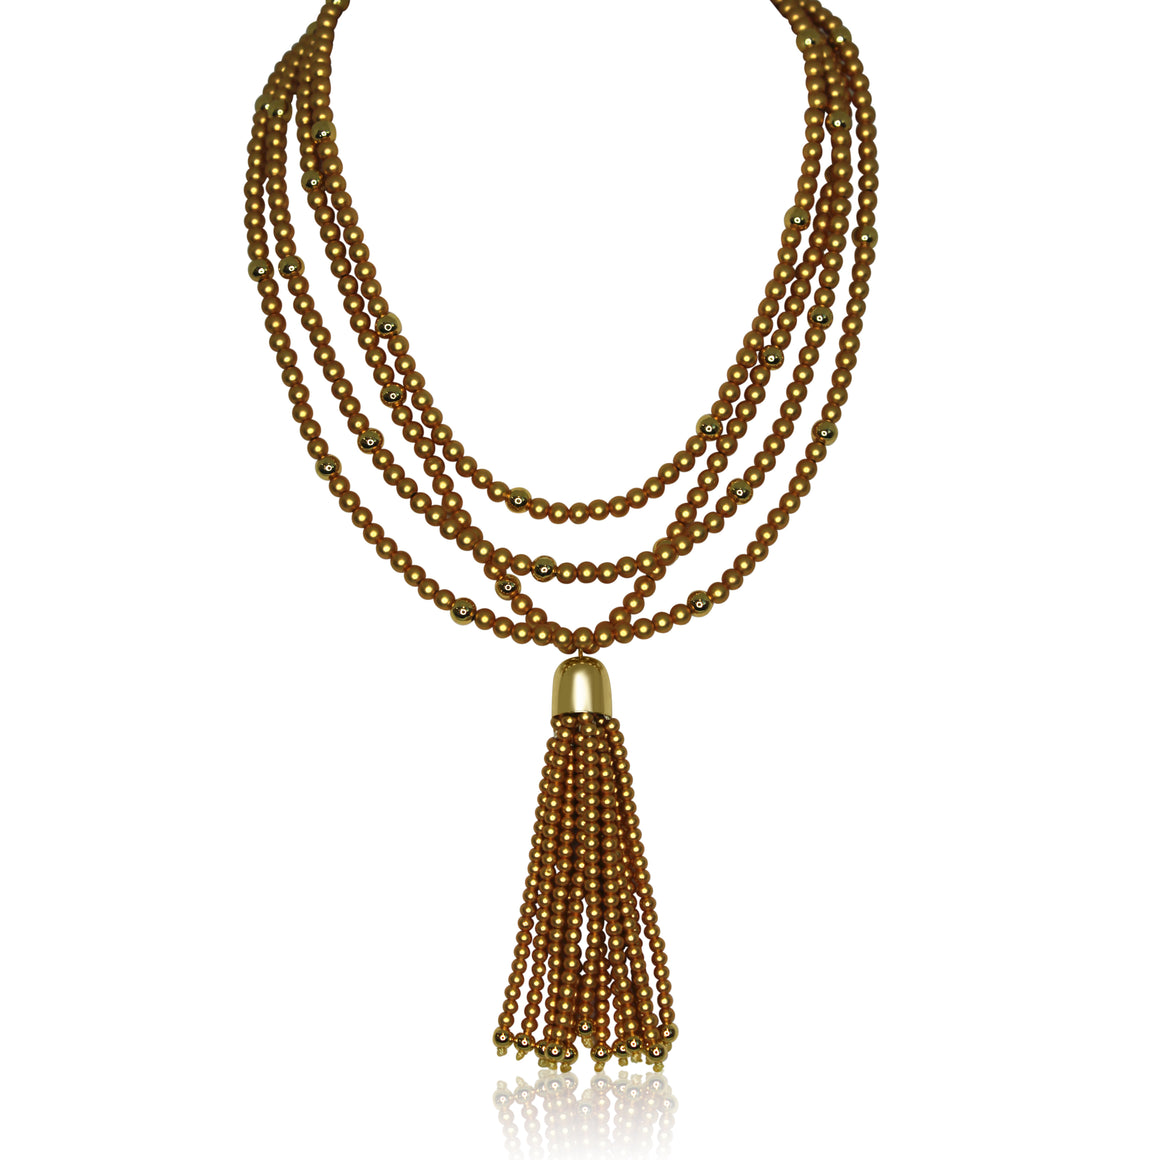 Tassel - Satin Yellow Gold Tassel with yellow gold magnets